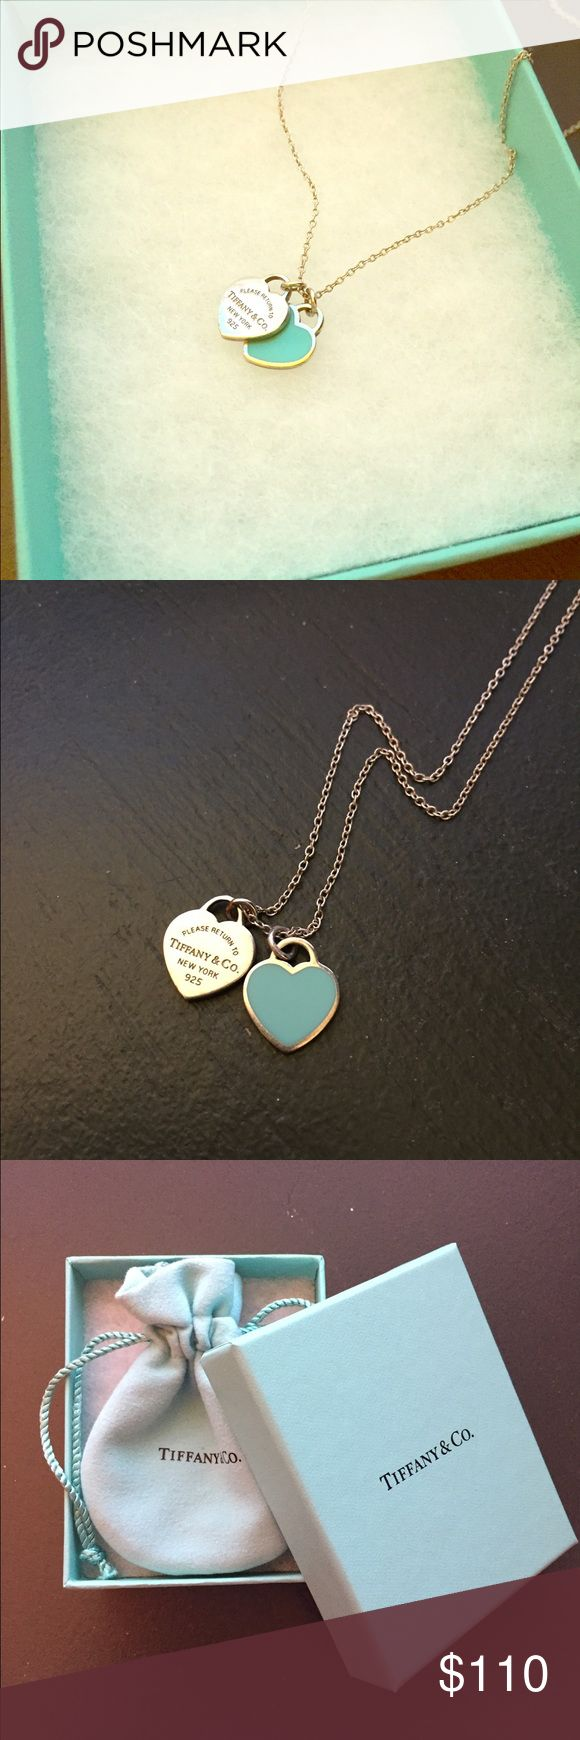 "Tiffany's mini double heart necklace ""Return to Tiffany's"" double heart necklace on an 18"" chain. Sterling silver with Tiffany Blue enamel finish. Beautiful condition and a timeless piece. Tiffany & Co. Jewelry Necklaces"